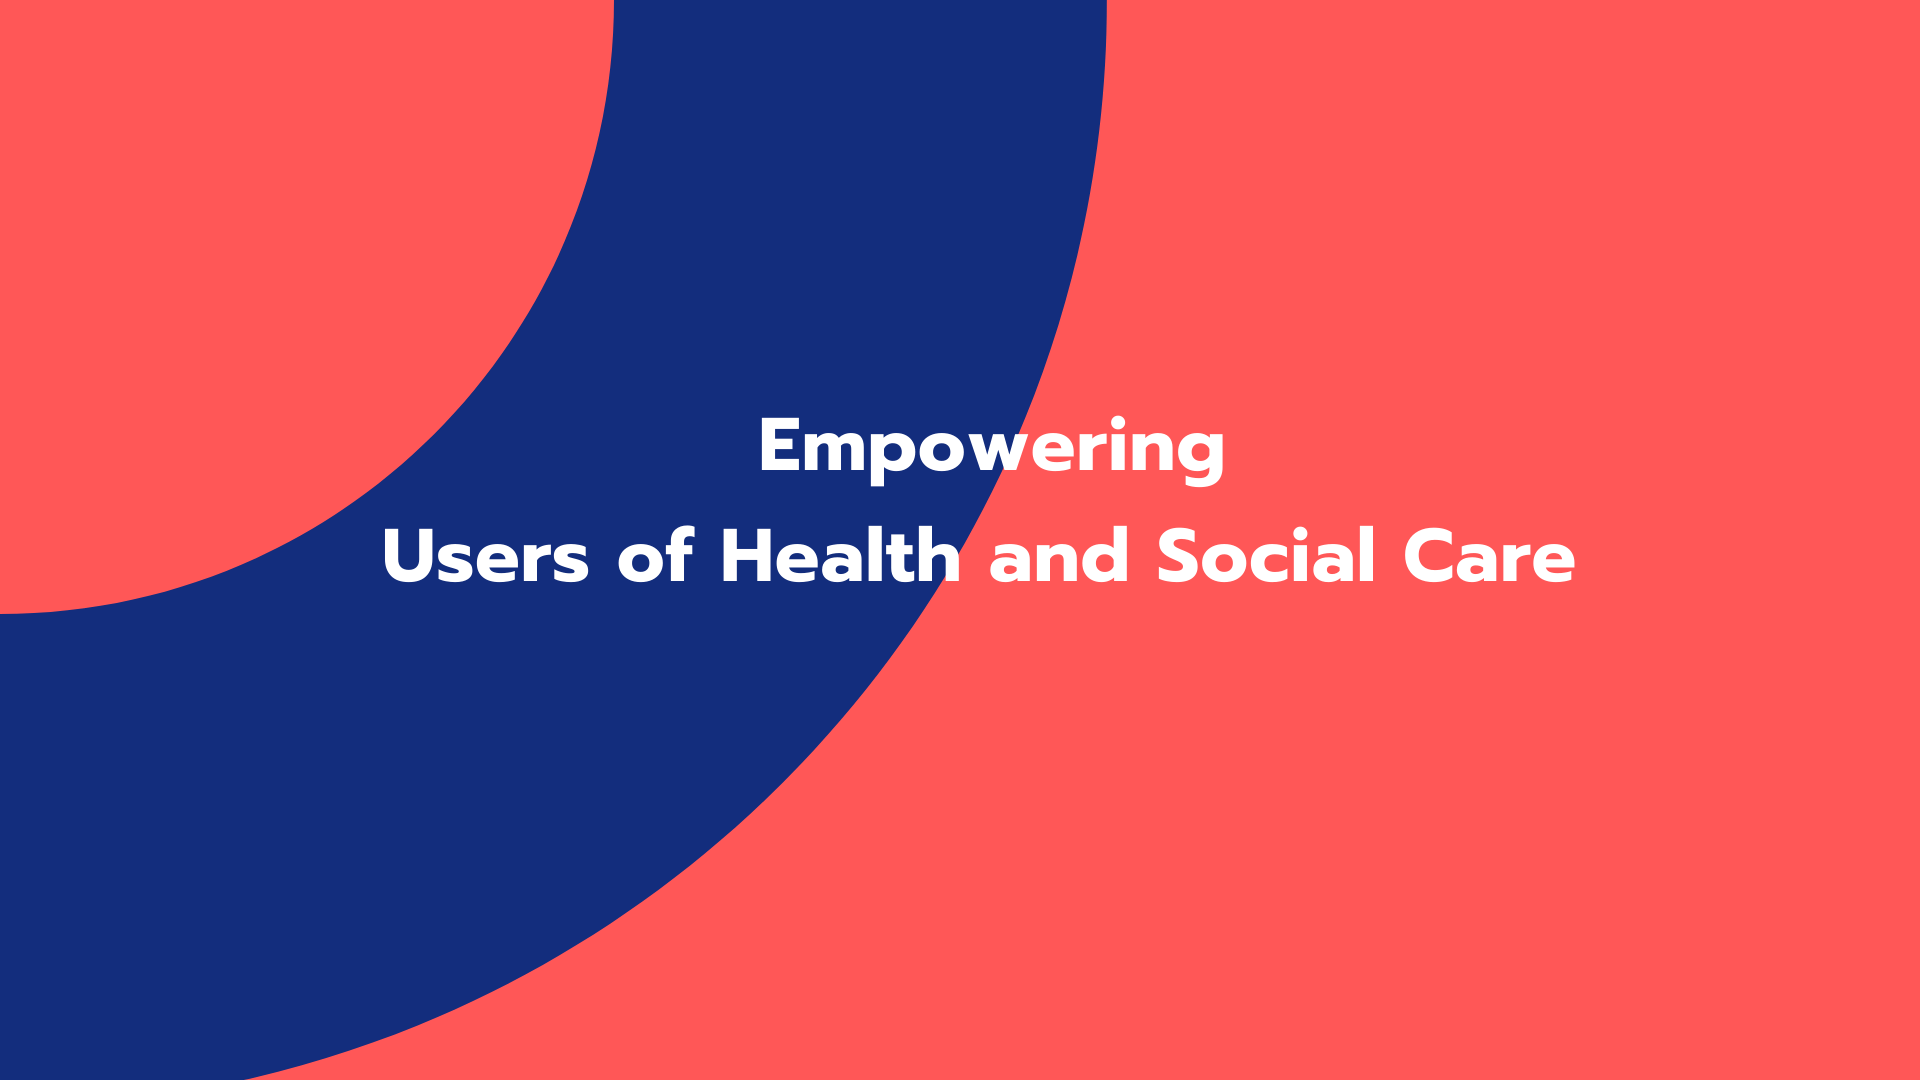 Empowering Users of Health and Social Care